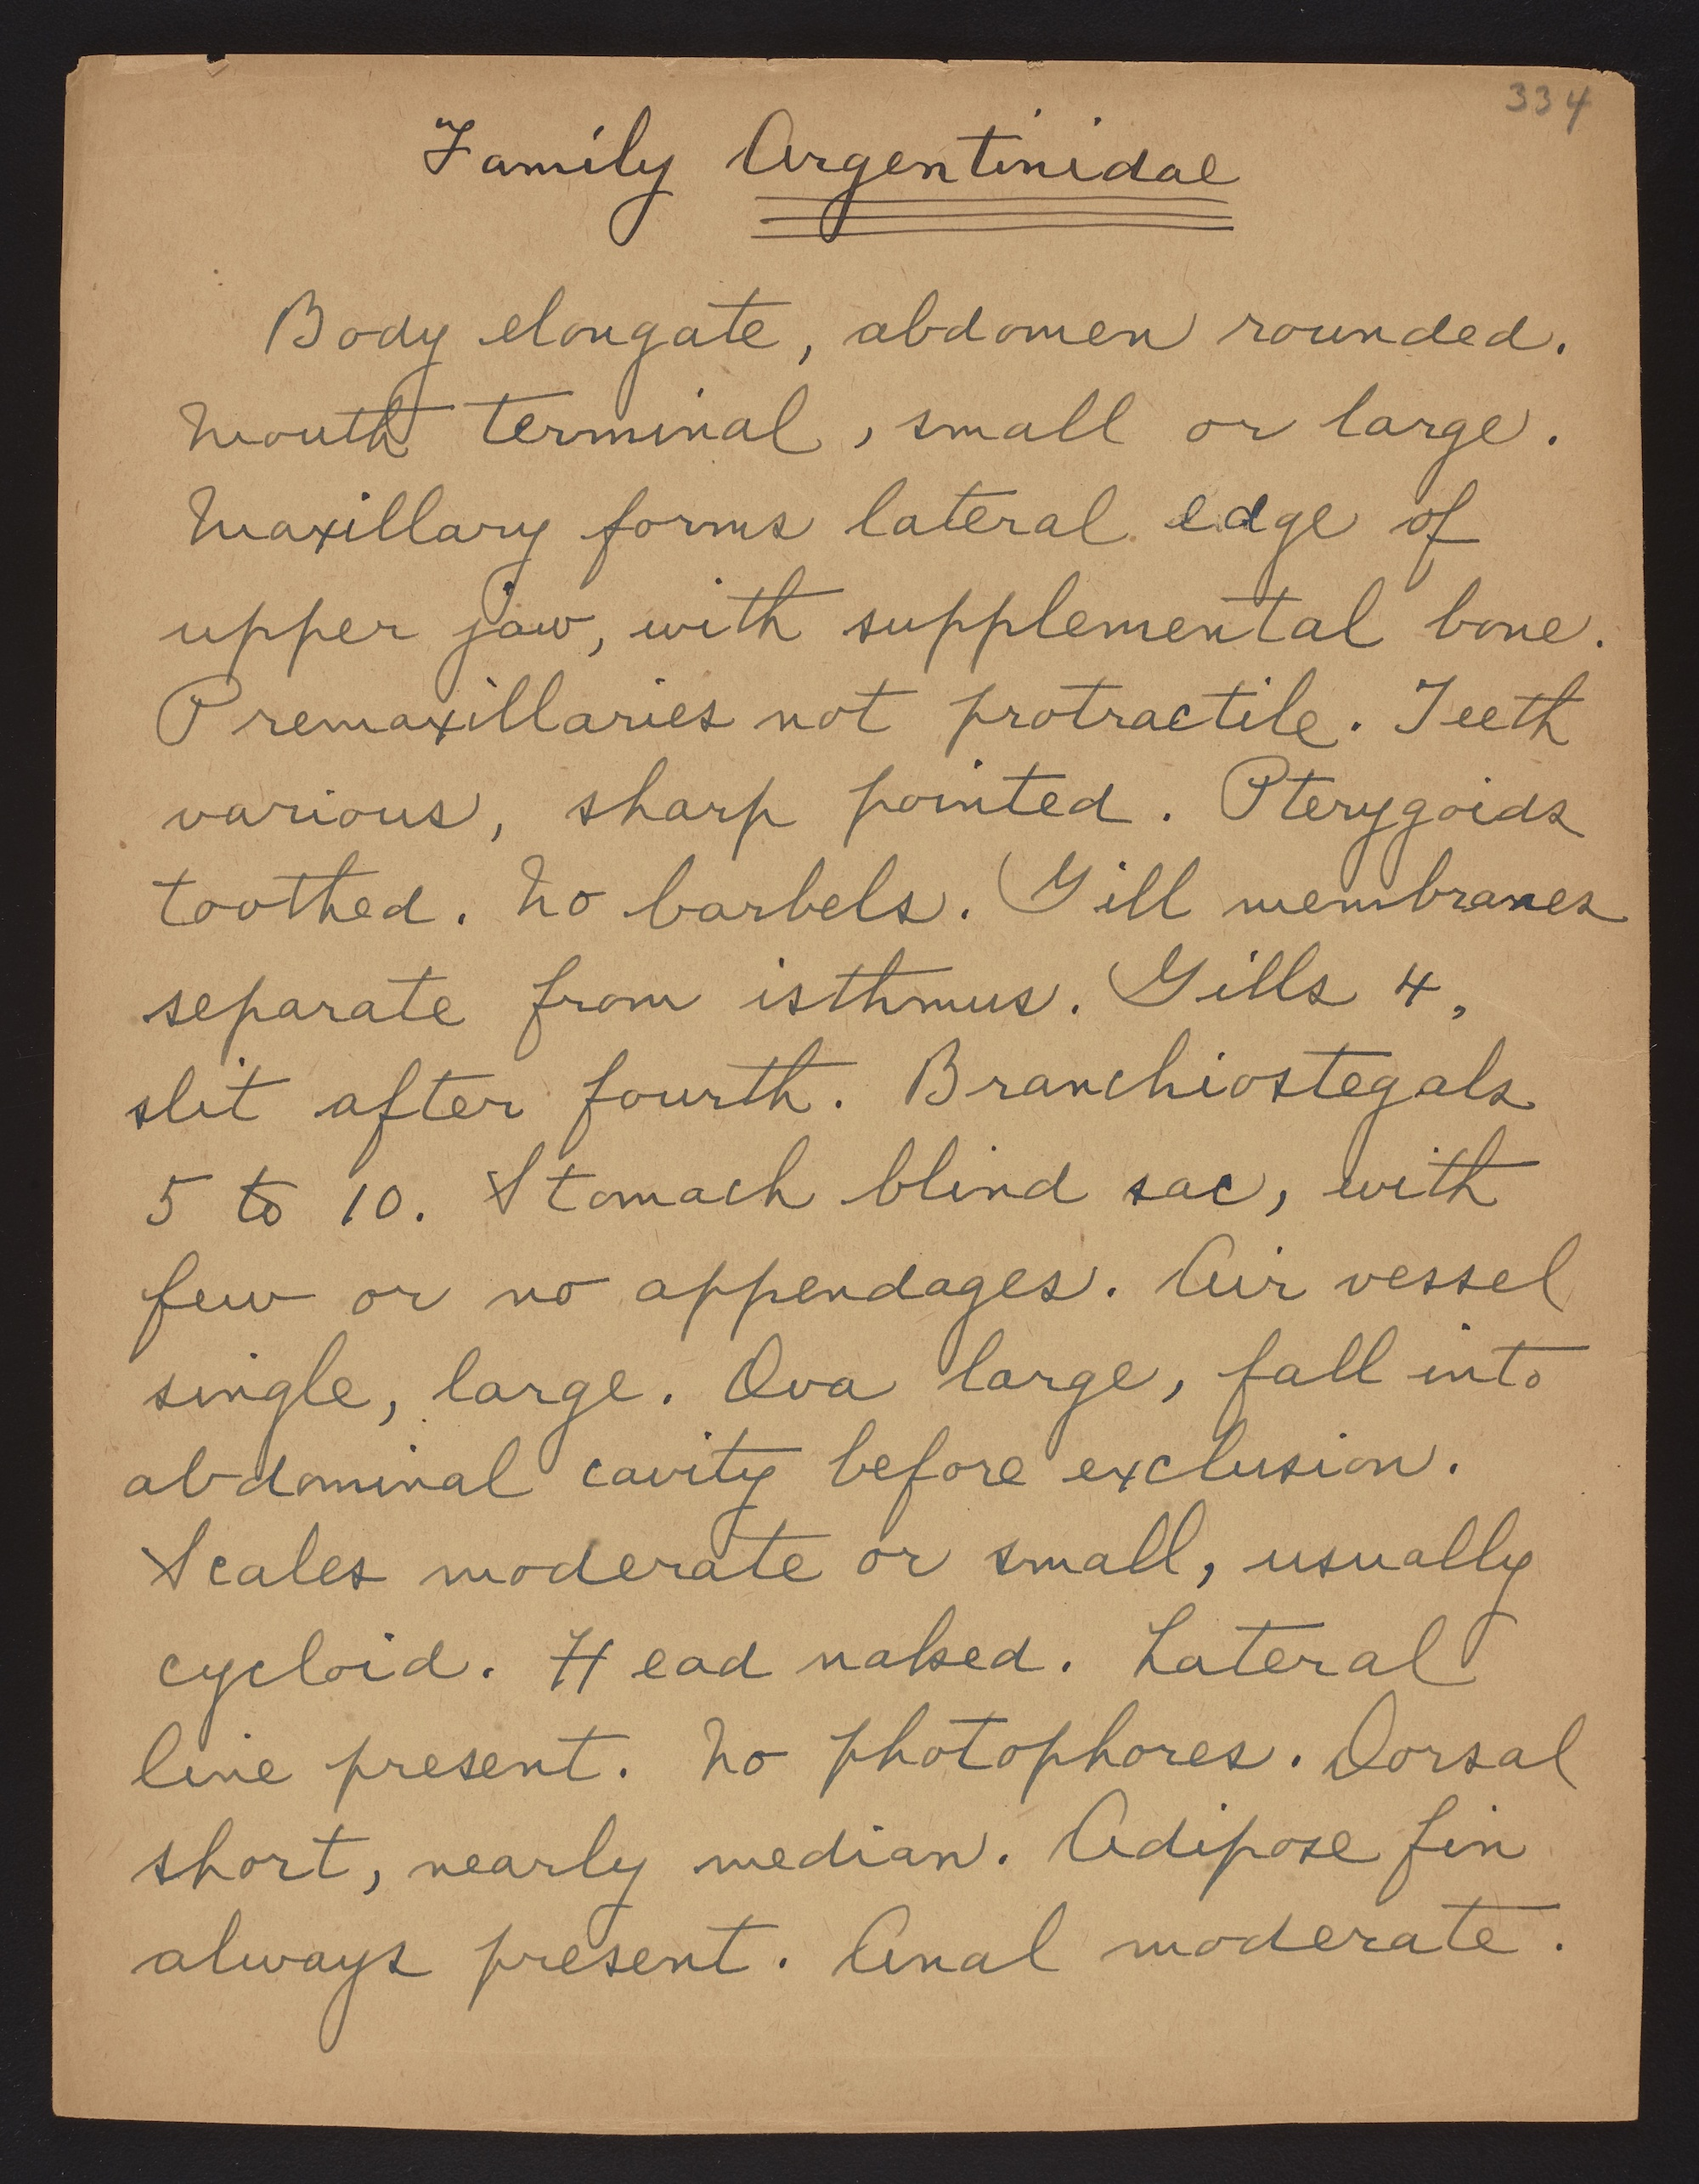 Fowler, Henry Weed. Manuscript of Henry Weed Fowler on the fishes of the Philippines, unpublished, circa 1930-1941. Families Argentinidae and Serpidae. Digitized in BHL by Smithsonian Institution Archives.